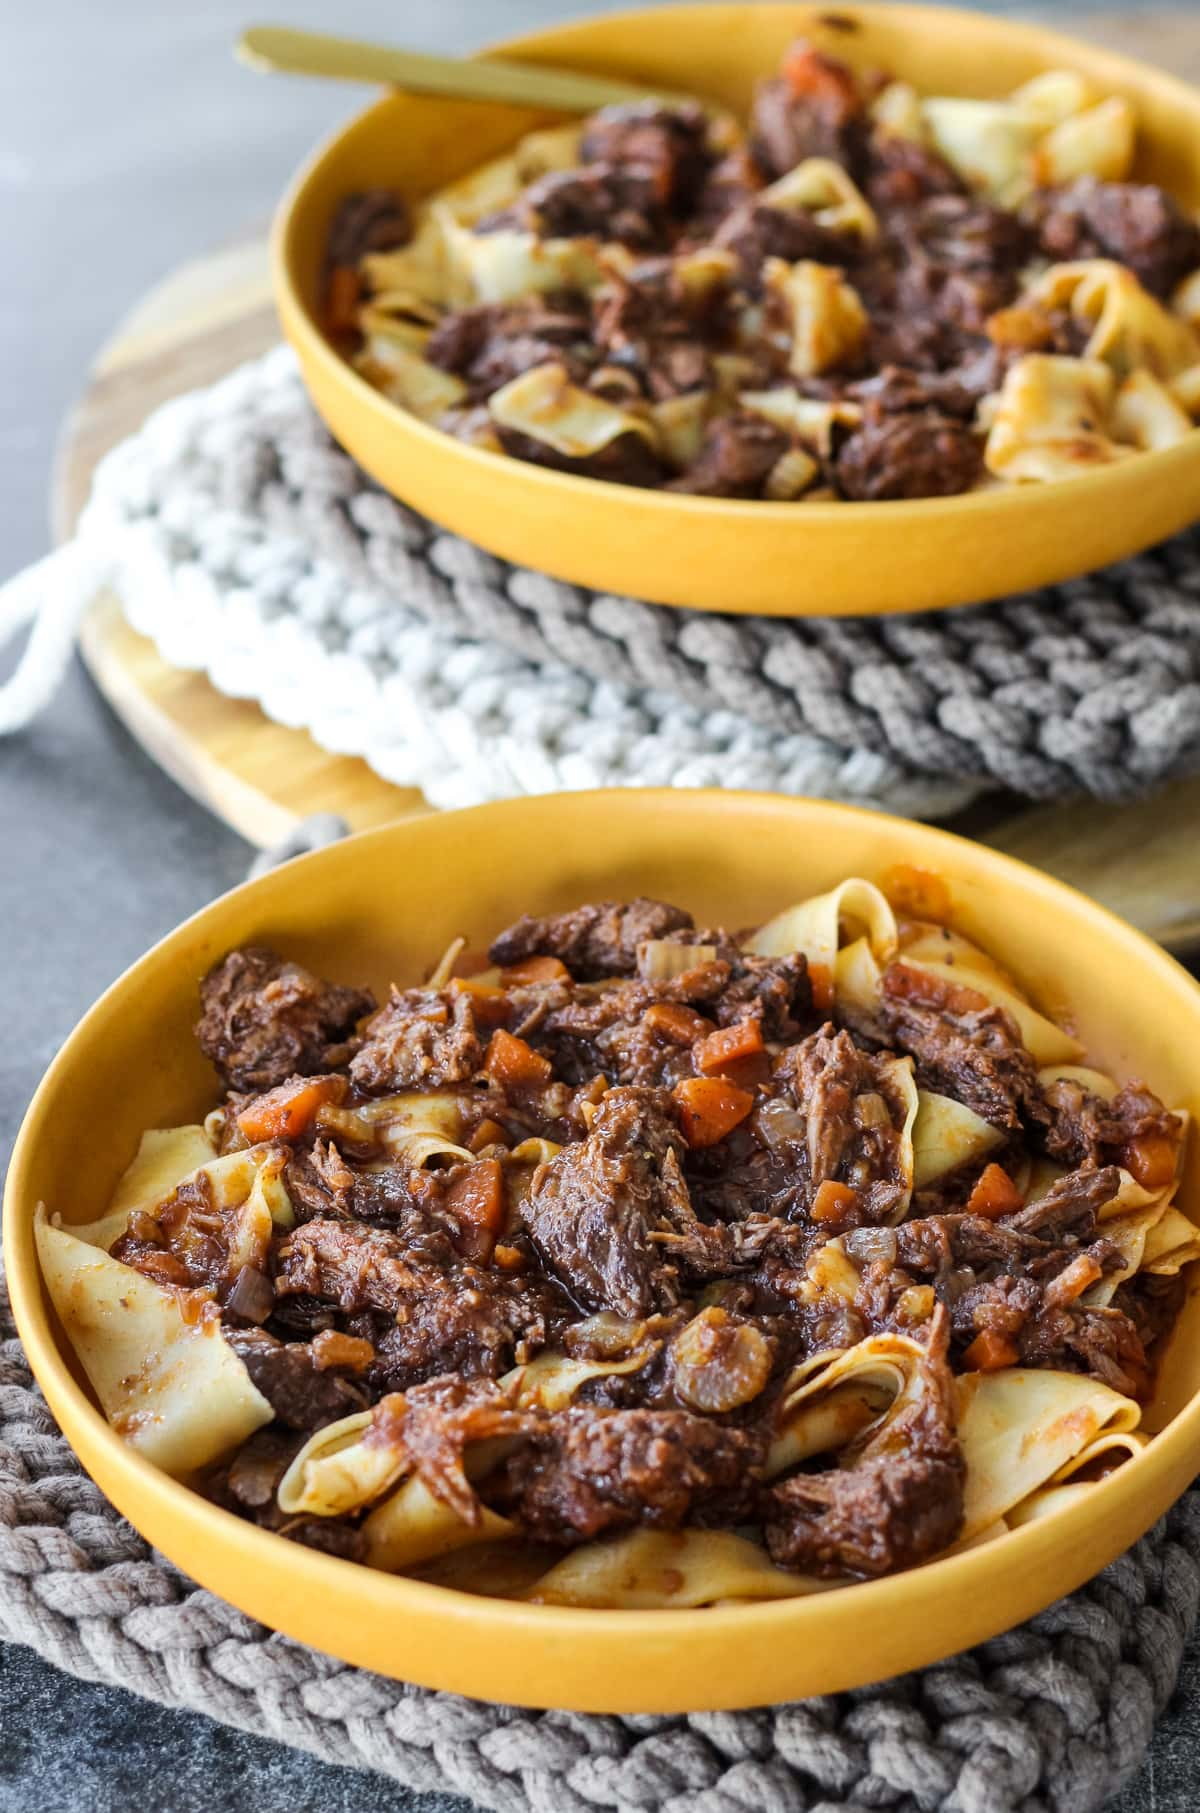 two yellow bowls sitting on knitted pot holders. the bowls are full of beef ragu over pappardelle pasta